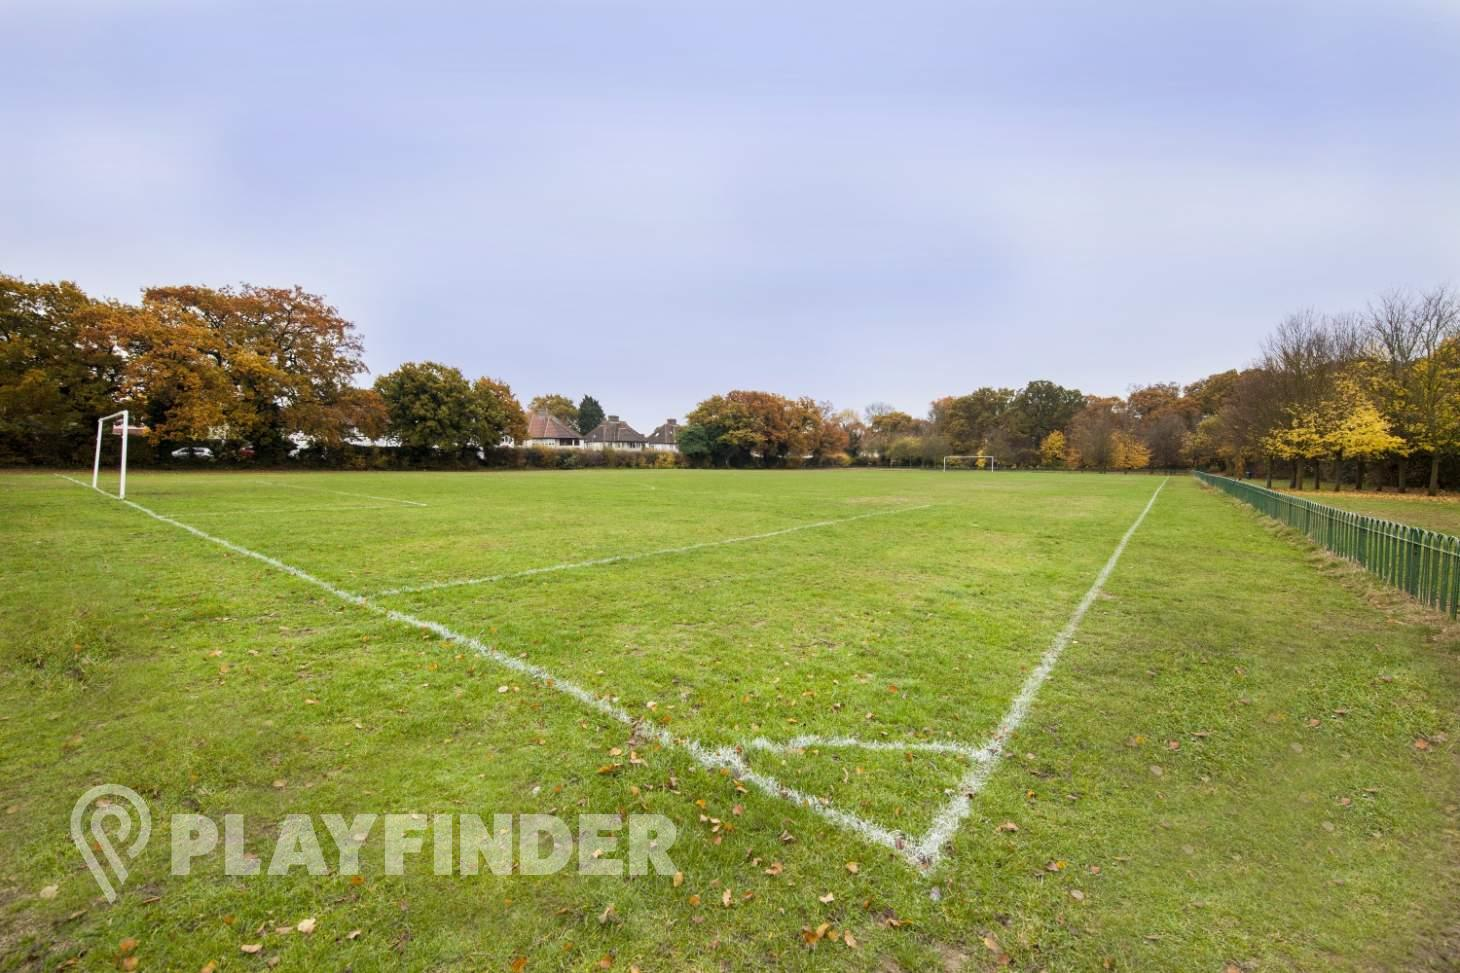 Ainslie Wood Sports Ground 11 a side | Grass football pitch